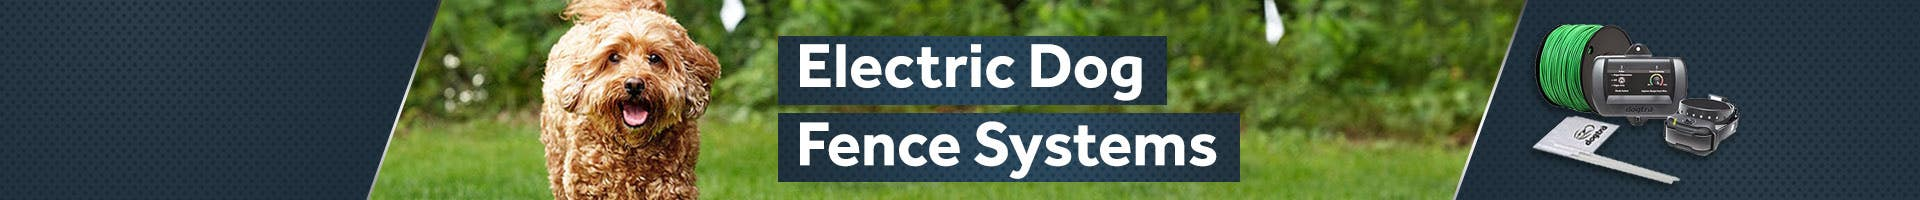 Electric Dog Fences